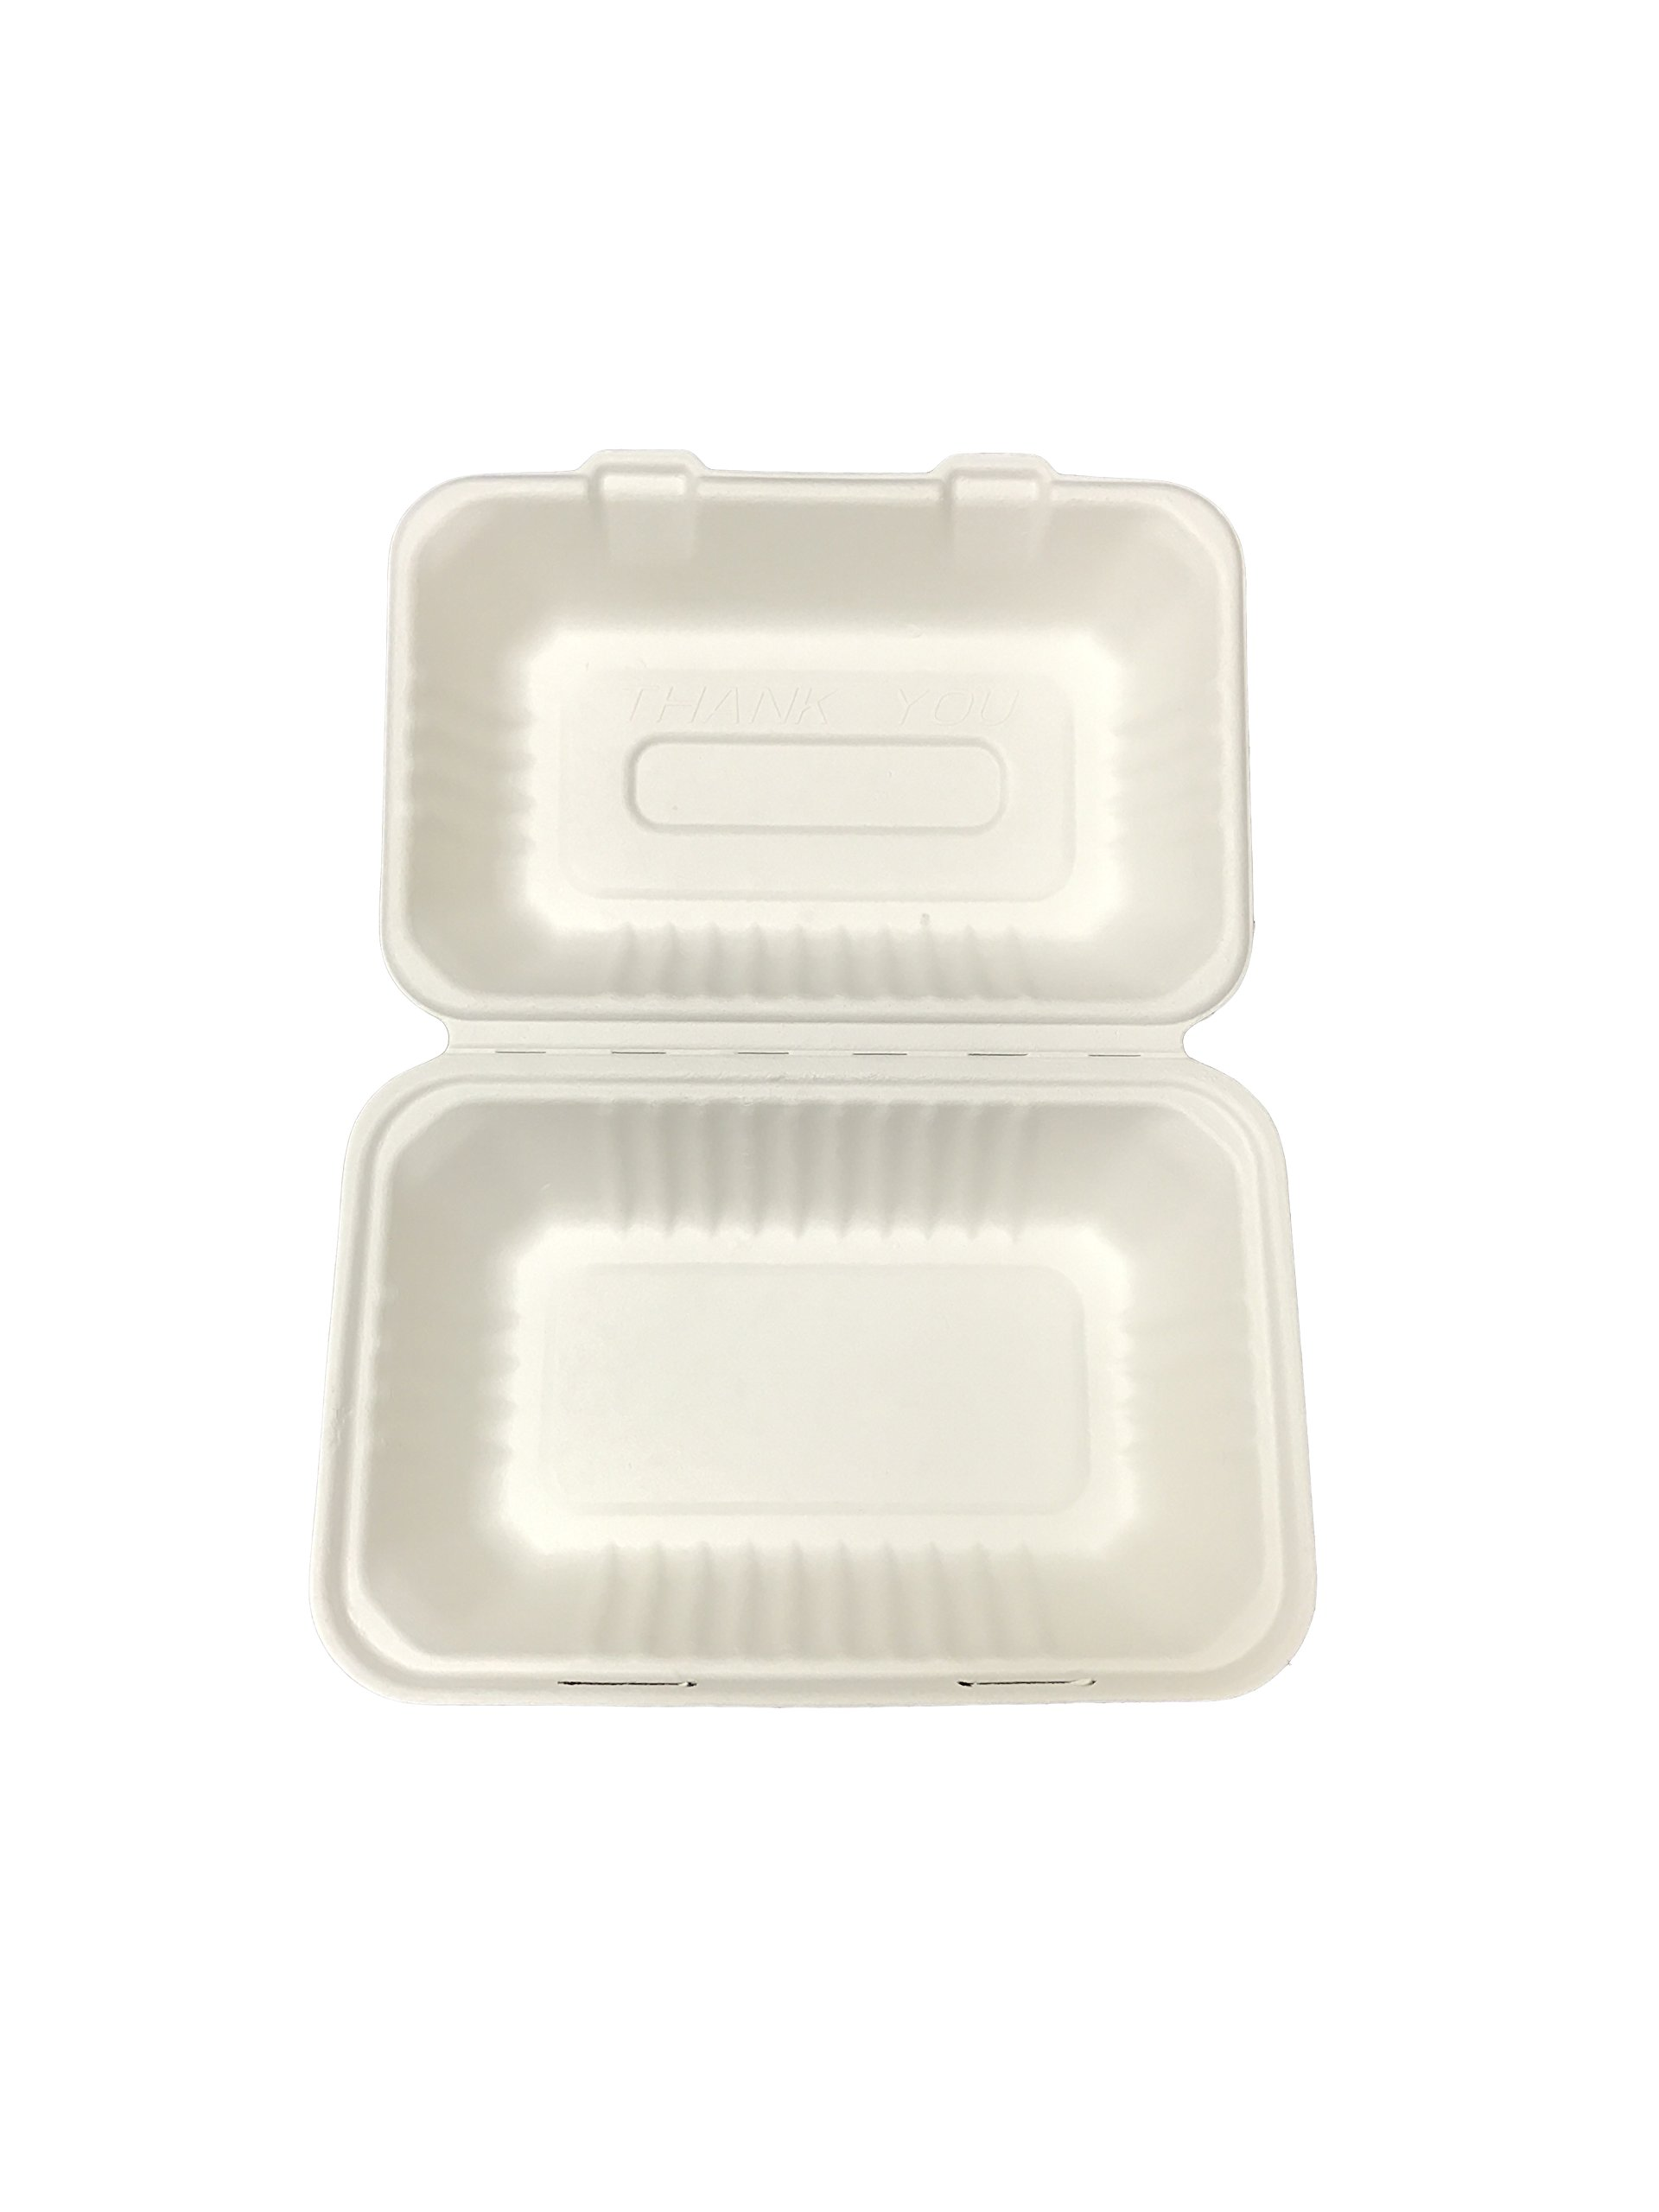 Primeware Bagasse Hinged Lid Container - Hoagie 9 x 6'' - 250/Cs (2 x 125), Not Applicable